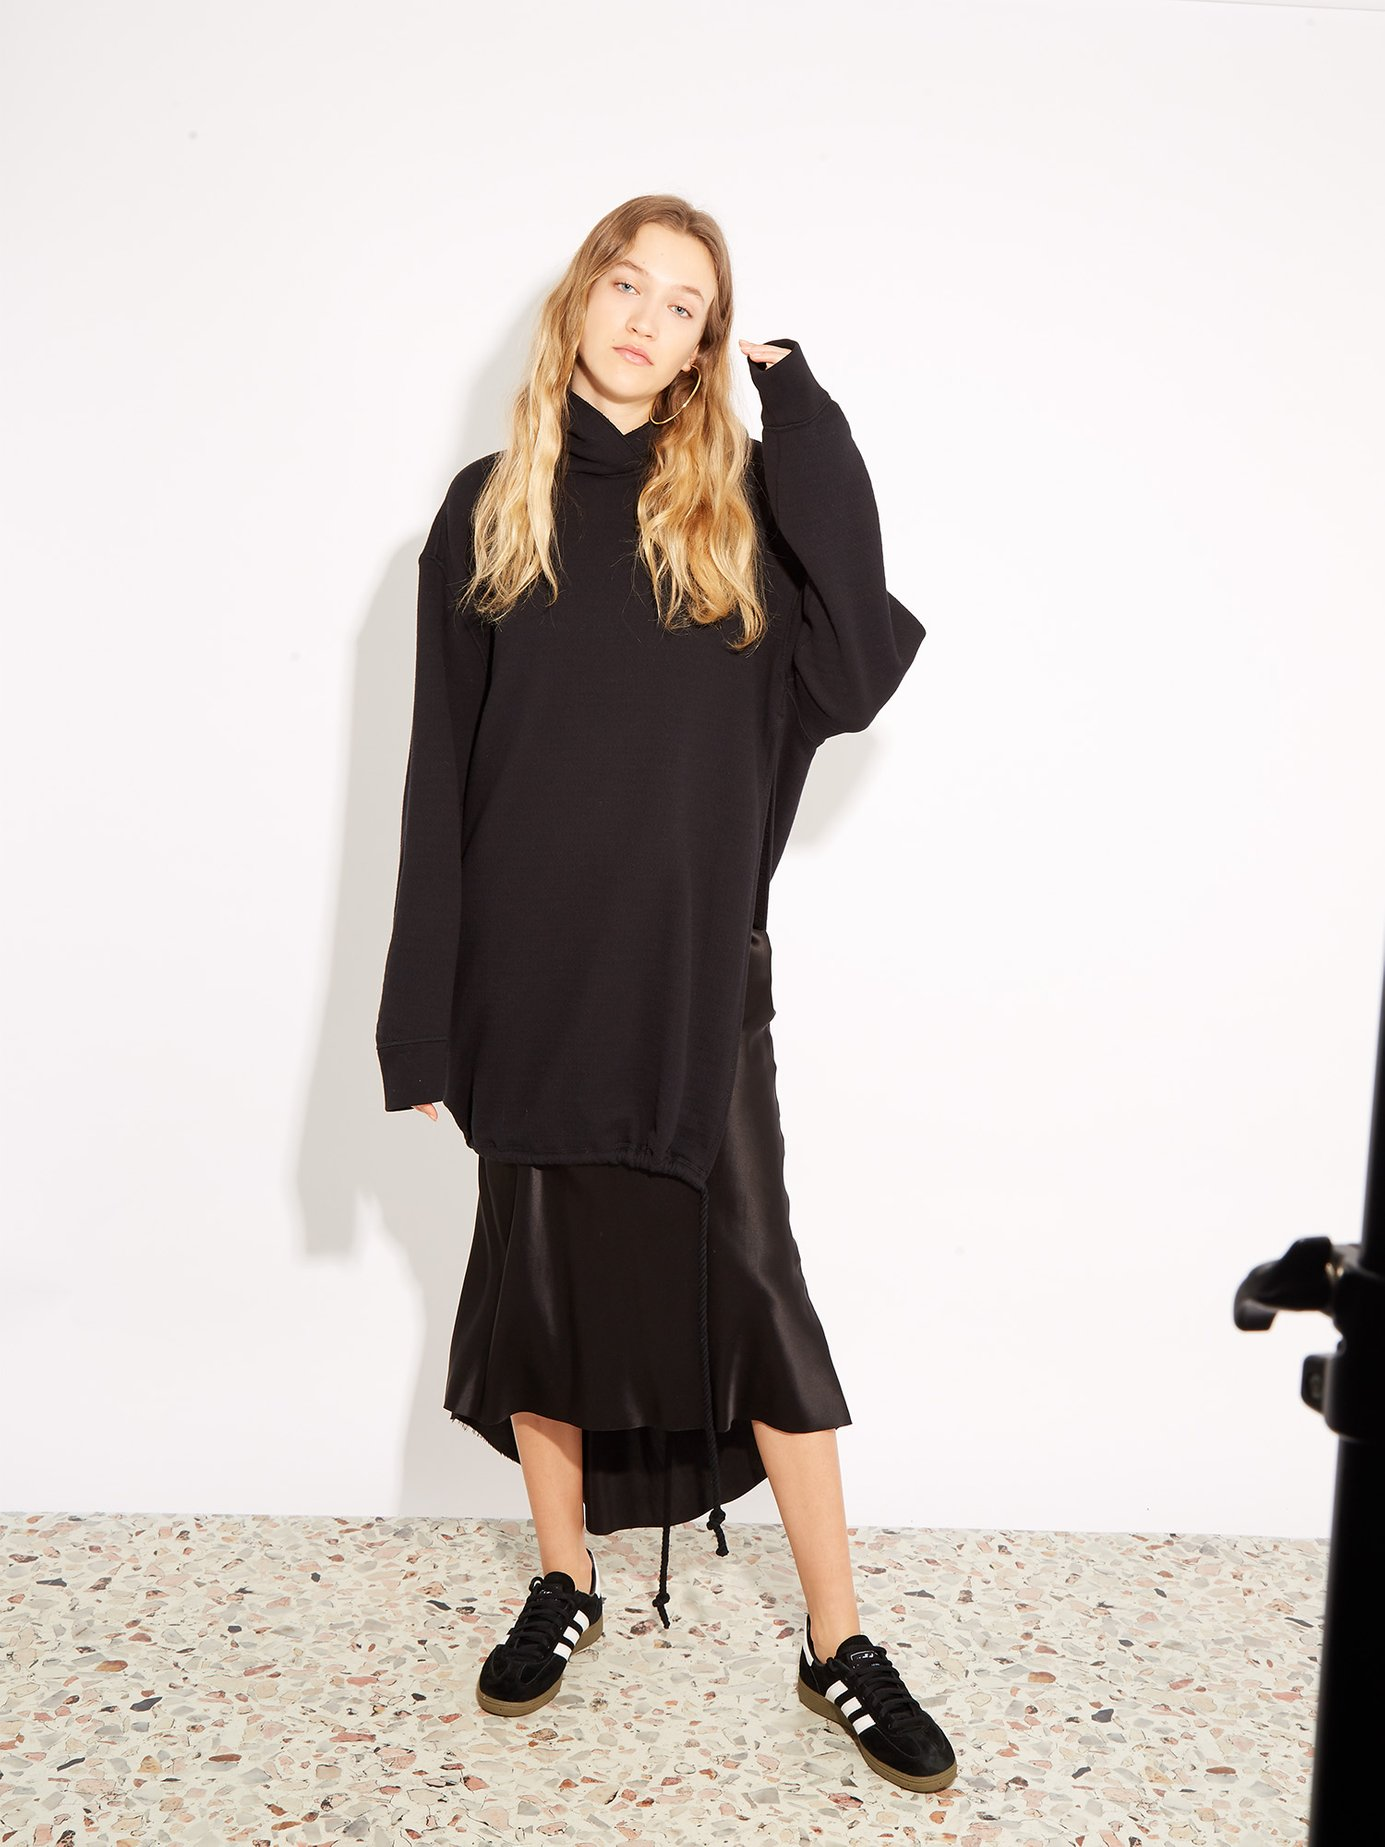 outfit_1217239_1.jpg